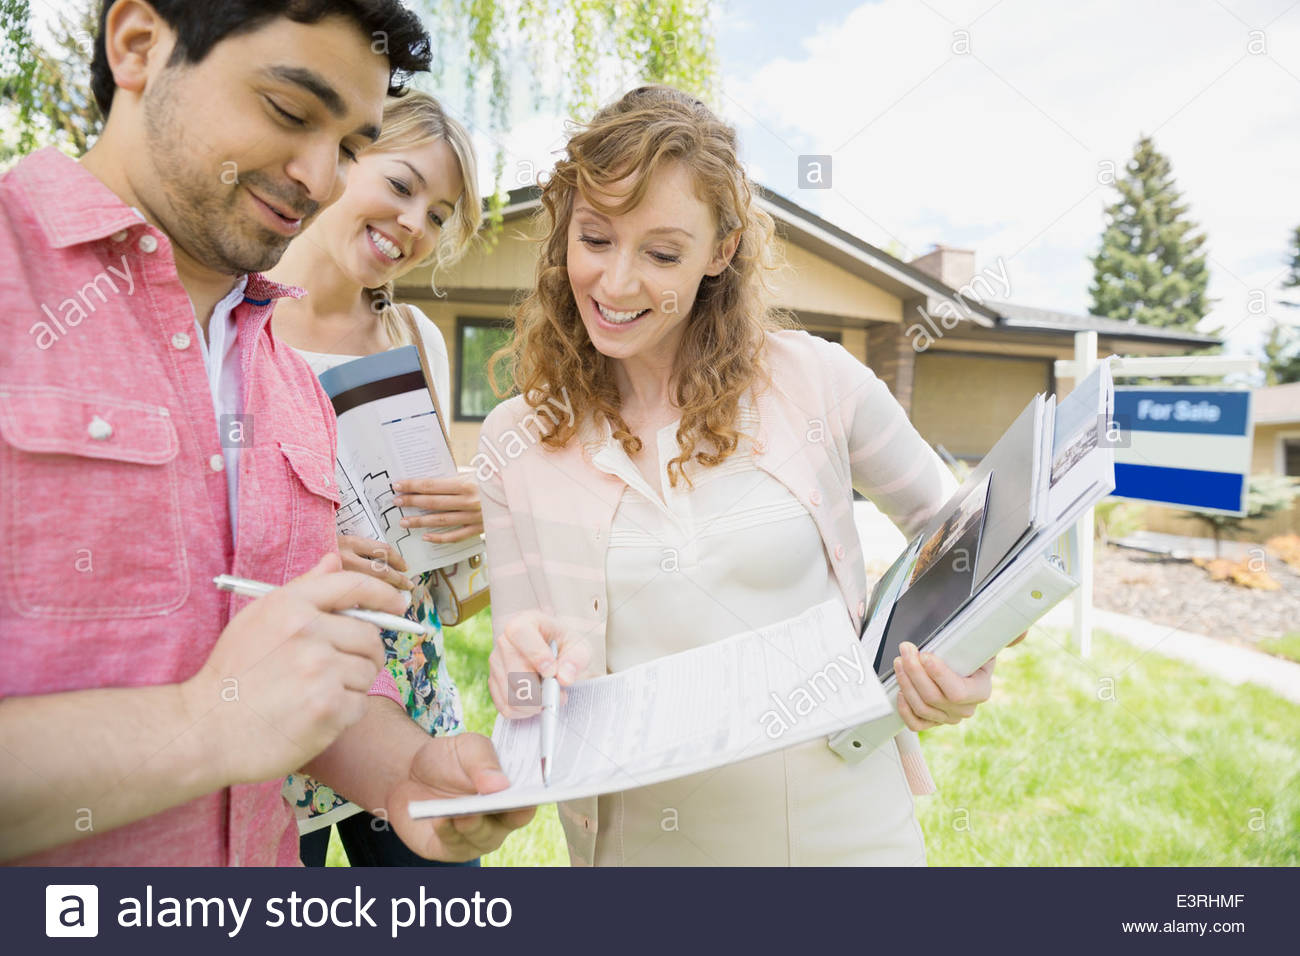 Couple signing paperwork with realtor outside house - Stock Image